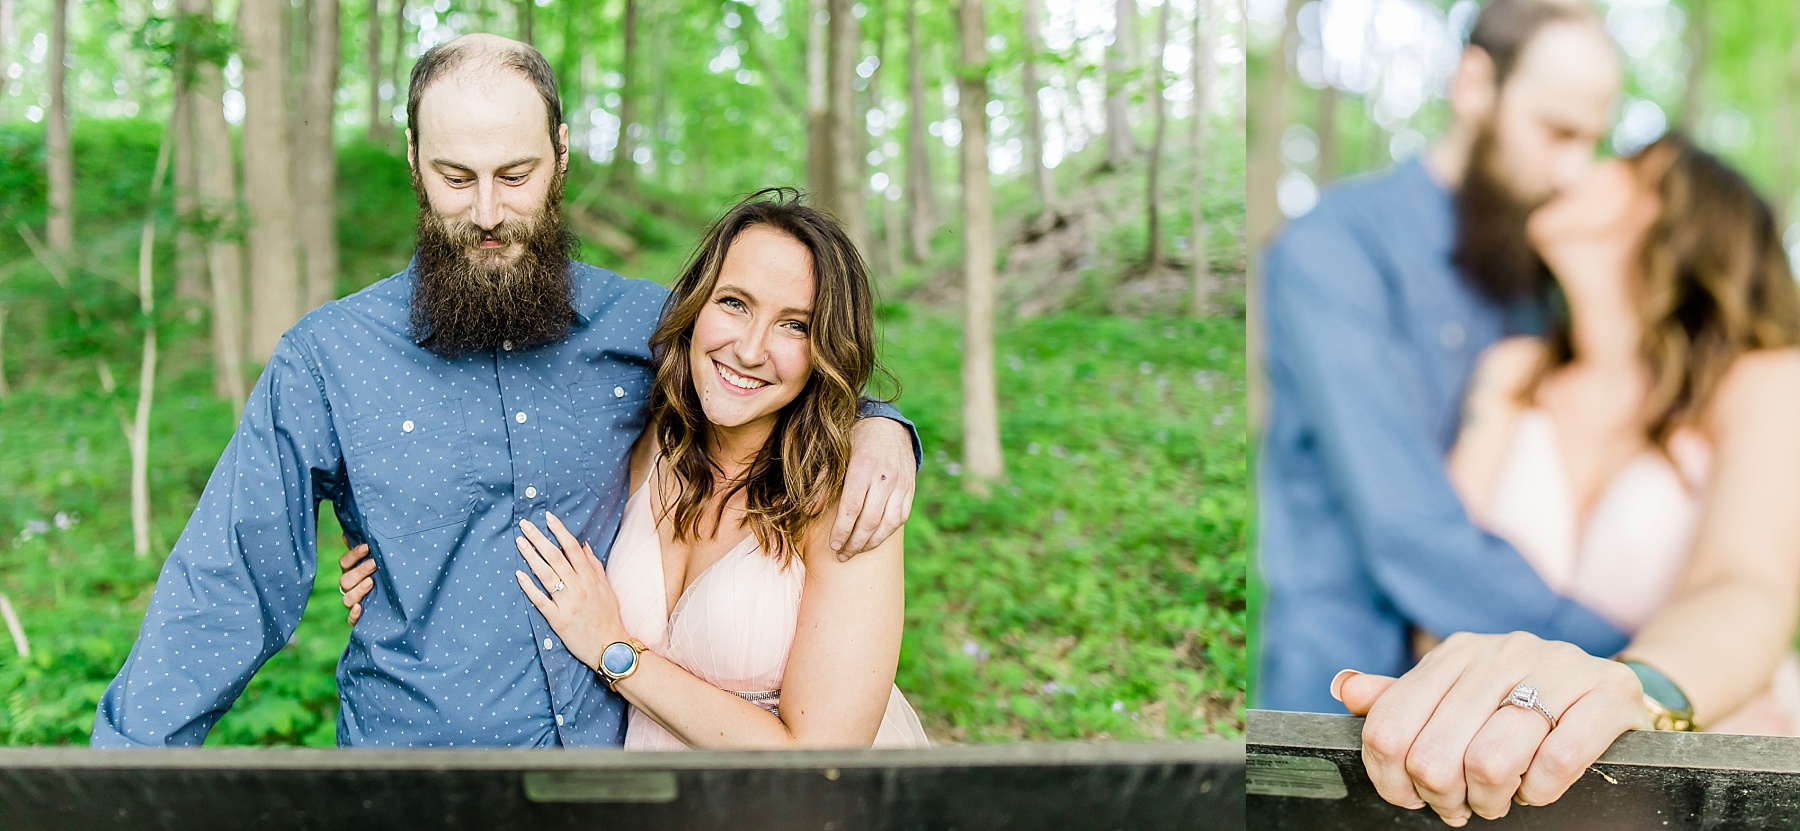 monticello indiana wedding engagement photography simple adventure weird_0018.jpg